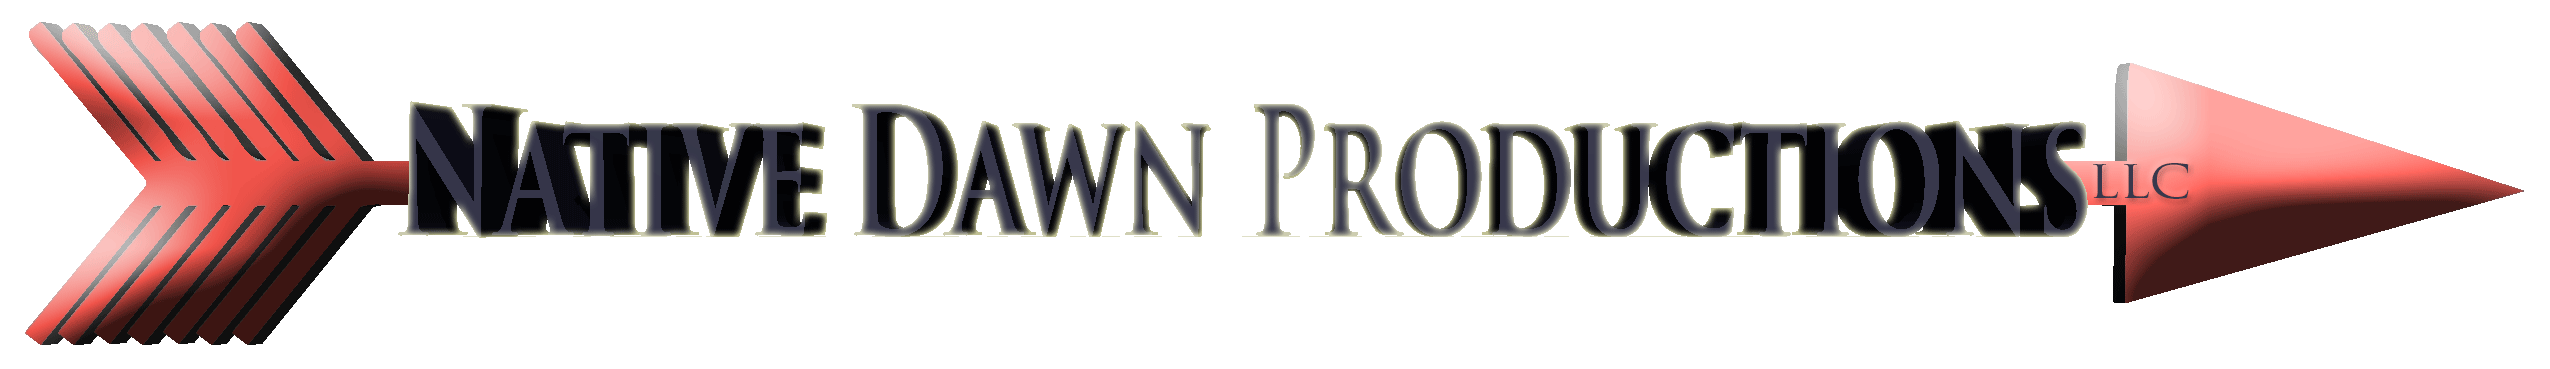 Native Dawn Productions